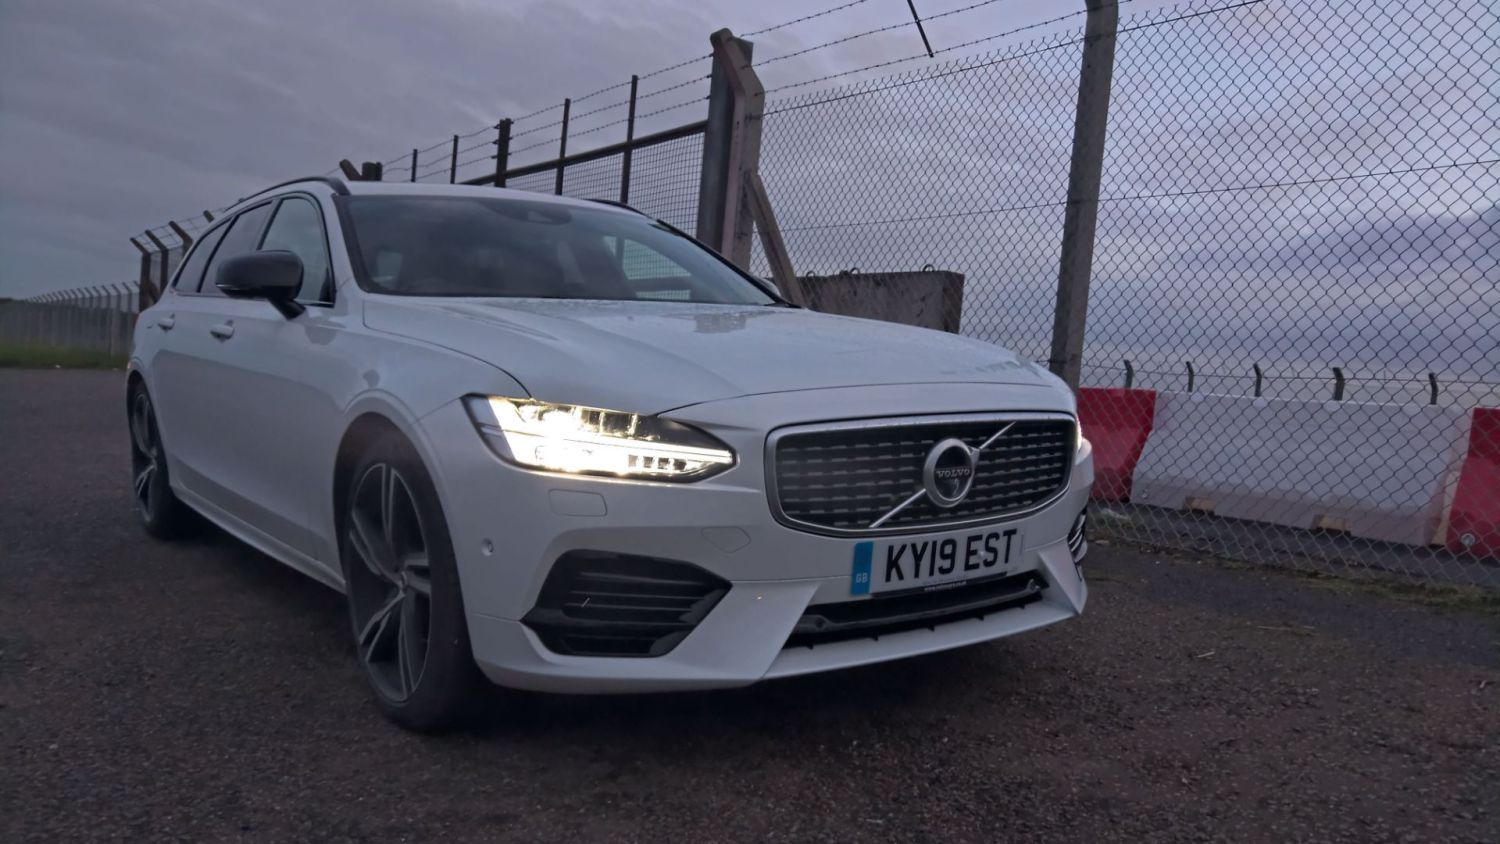 Volvo V90 T8 Twin Engine Review Bjorn To Be Wild I 2020